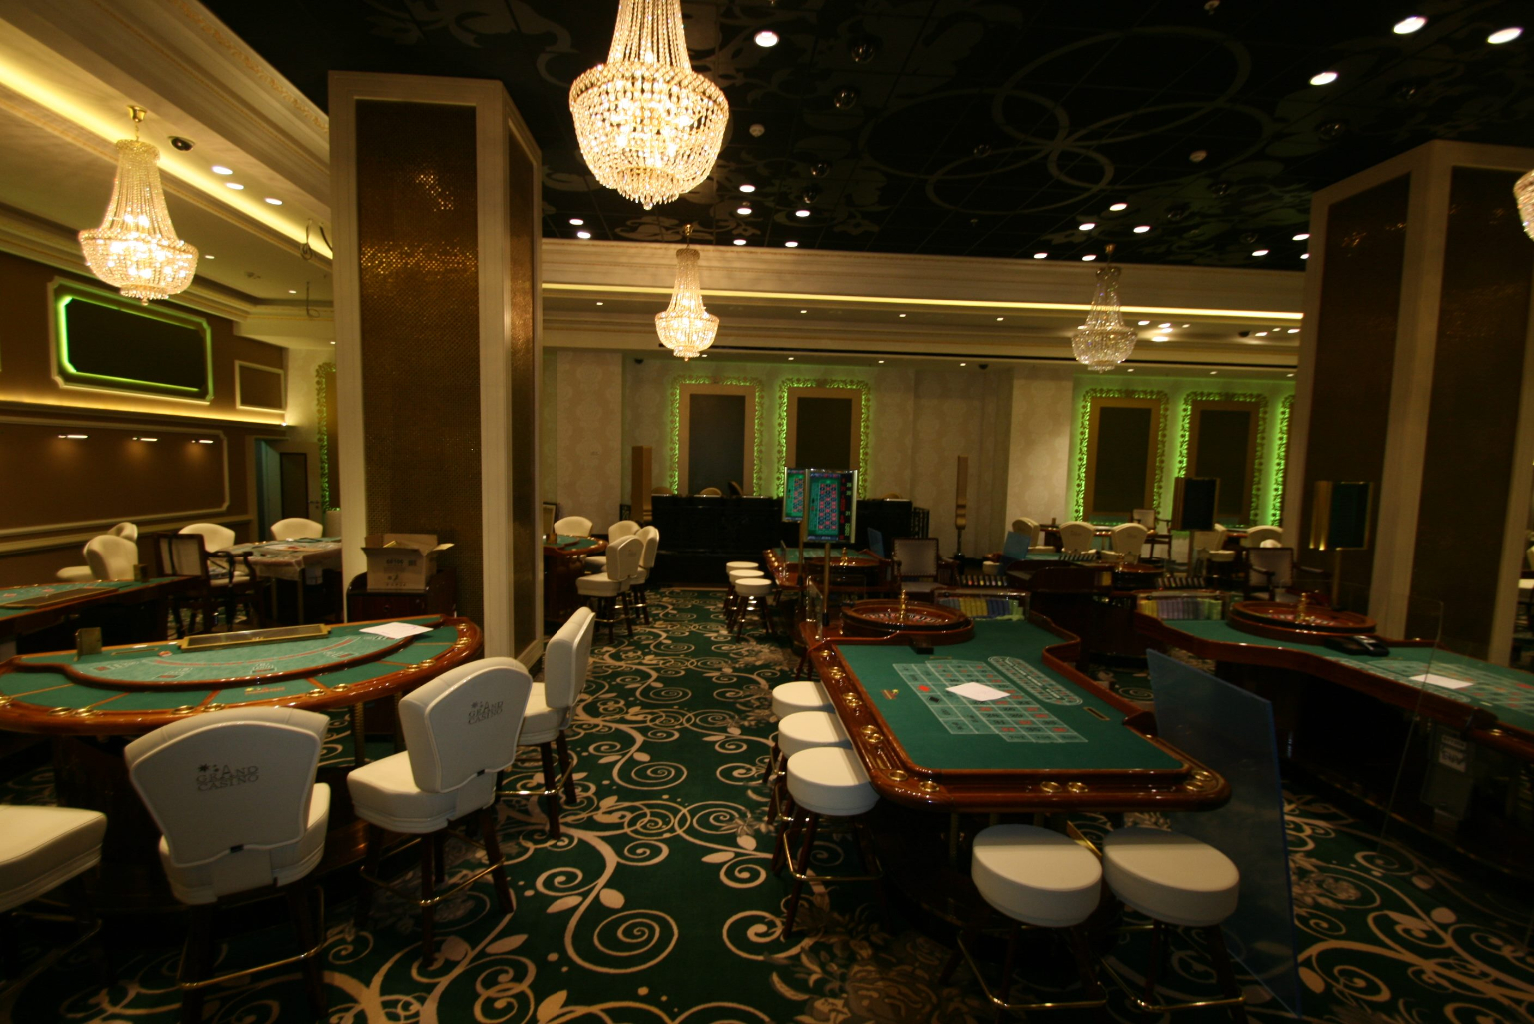 Grand Casino Marriott Bucuresti Bucharest placari pereti rame receptii usi bar bufet176